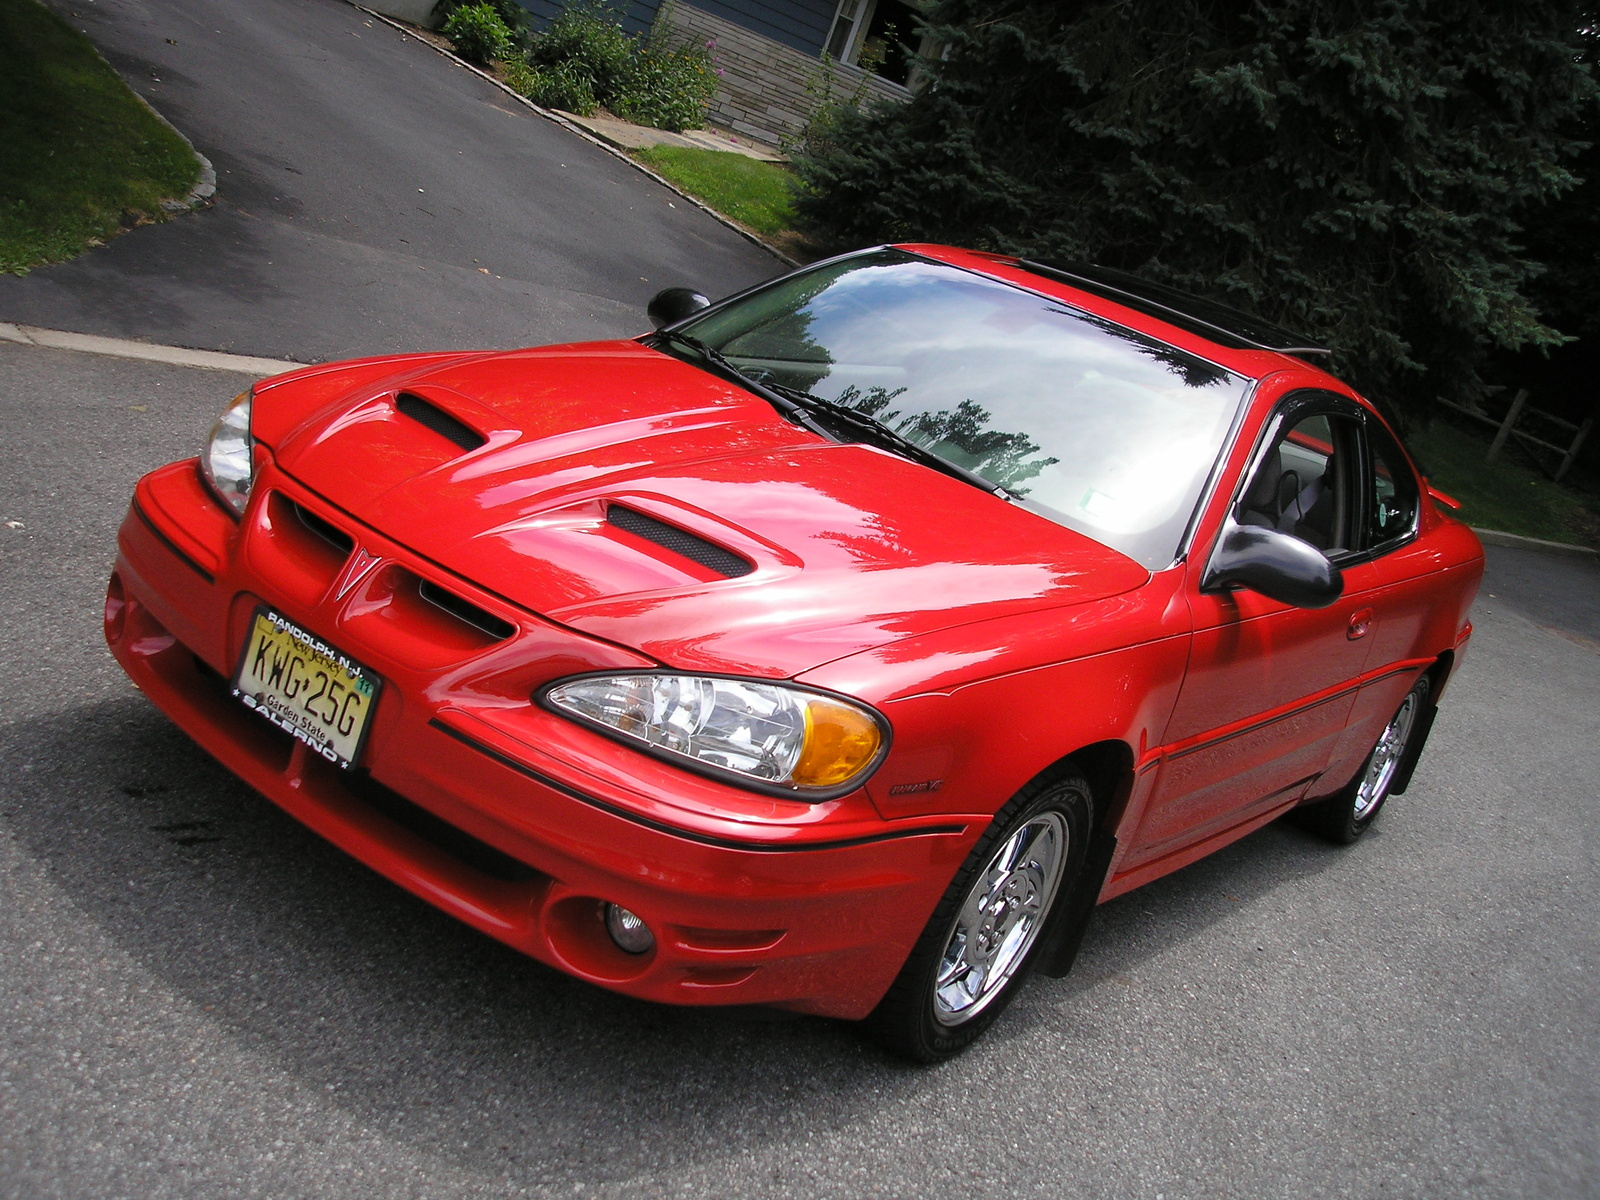 2003 Pontiac Grand Am GT Coupe - Pictures - 2003 Pontiac Grand Am GT ...